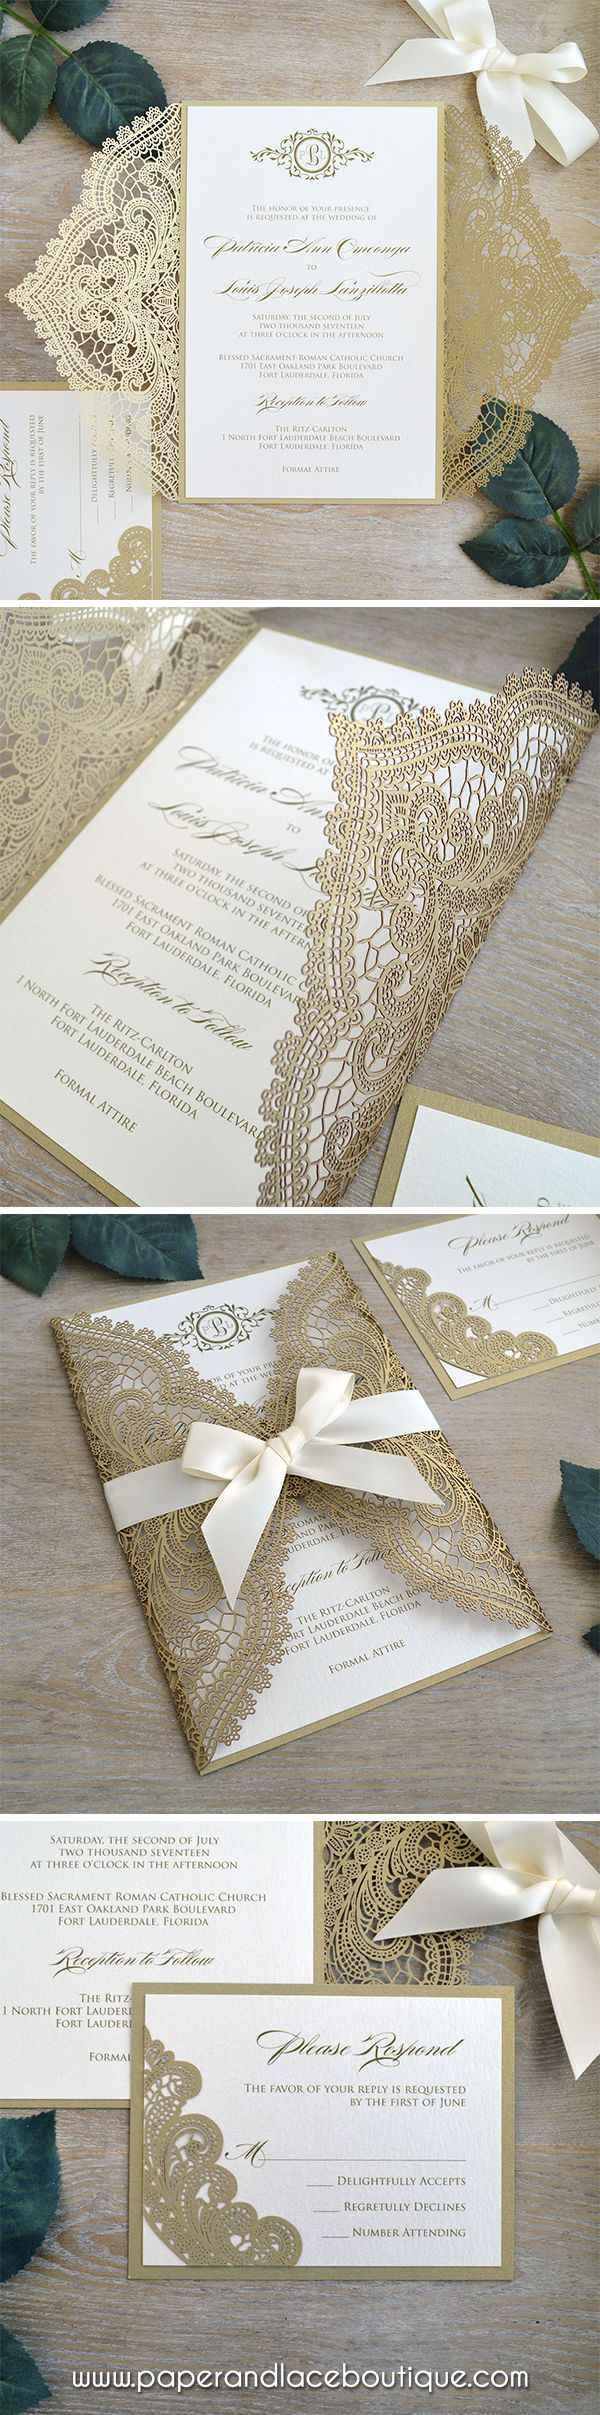 2823 Best Card Making Invitation Images On Pinterest Invitation